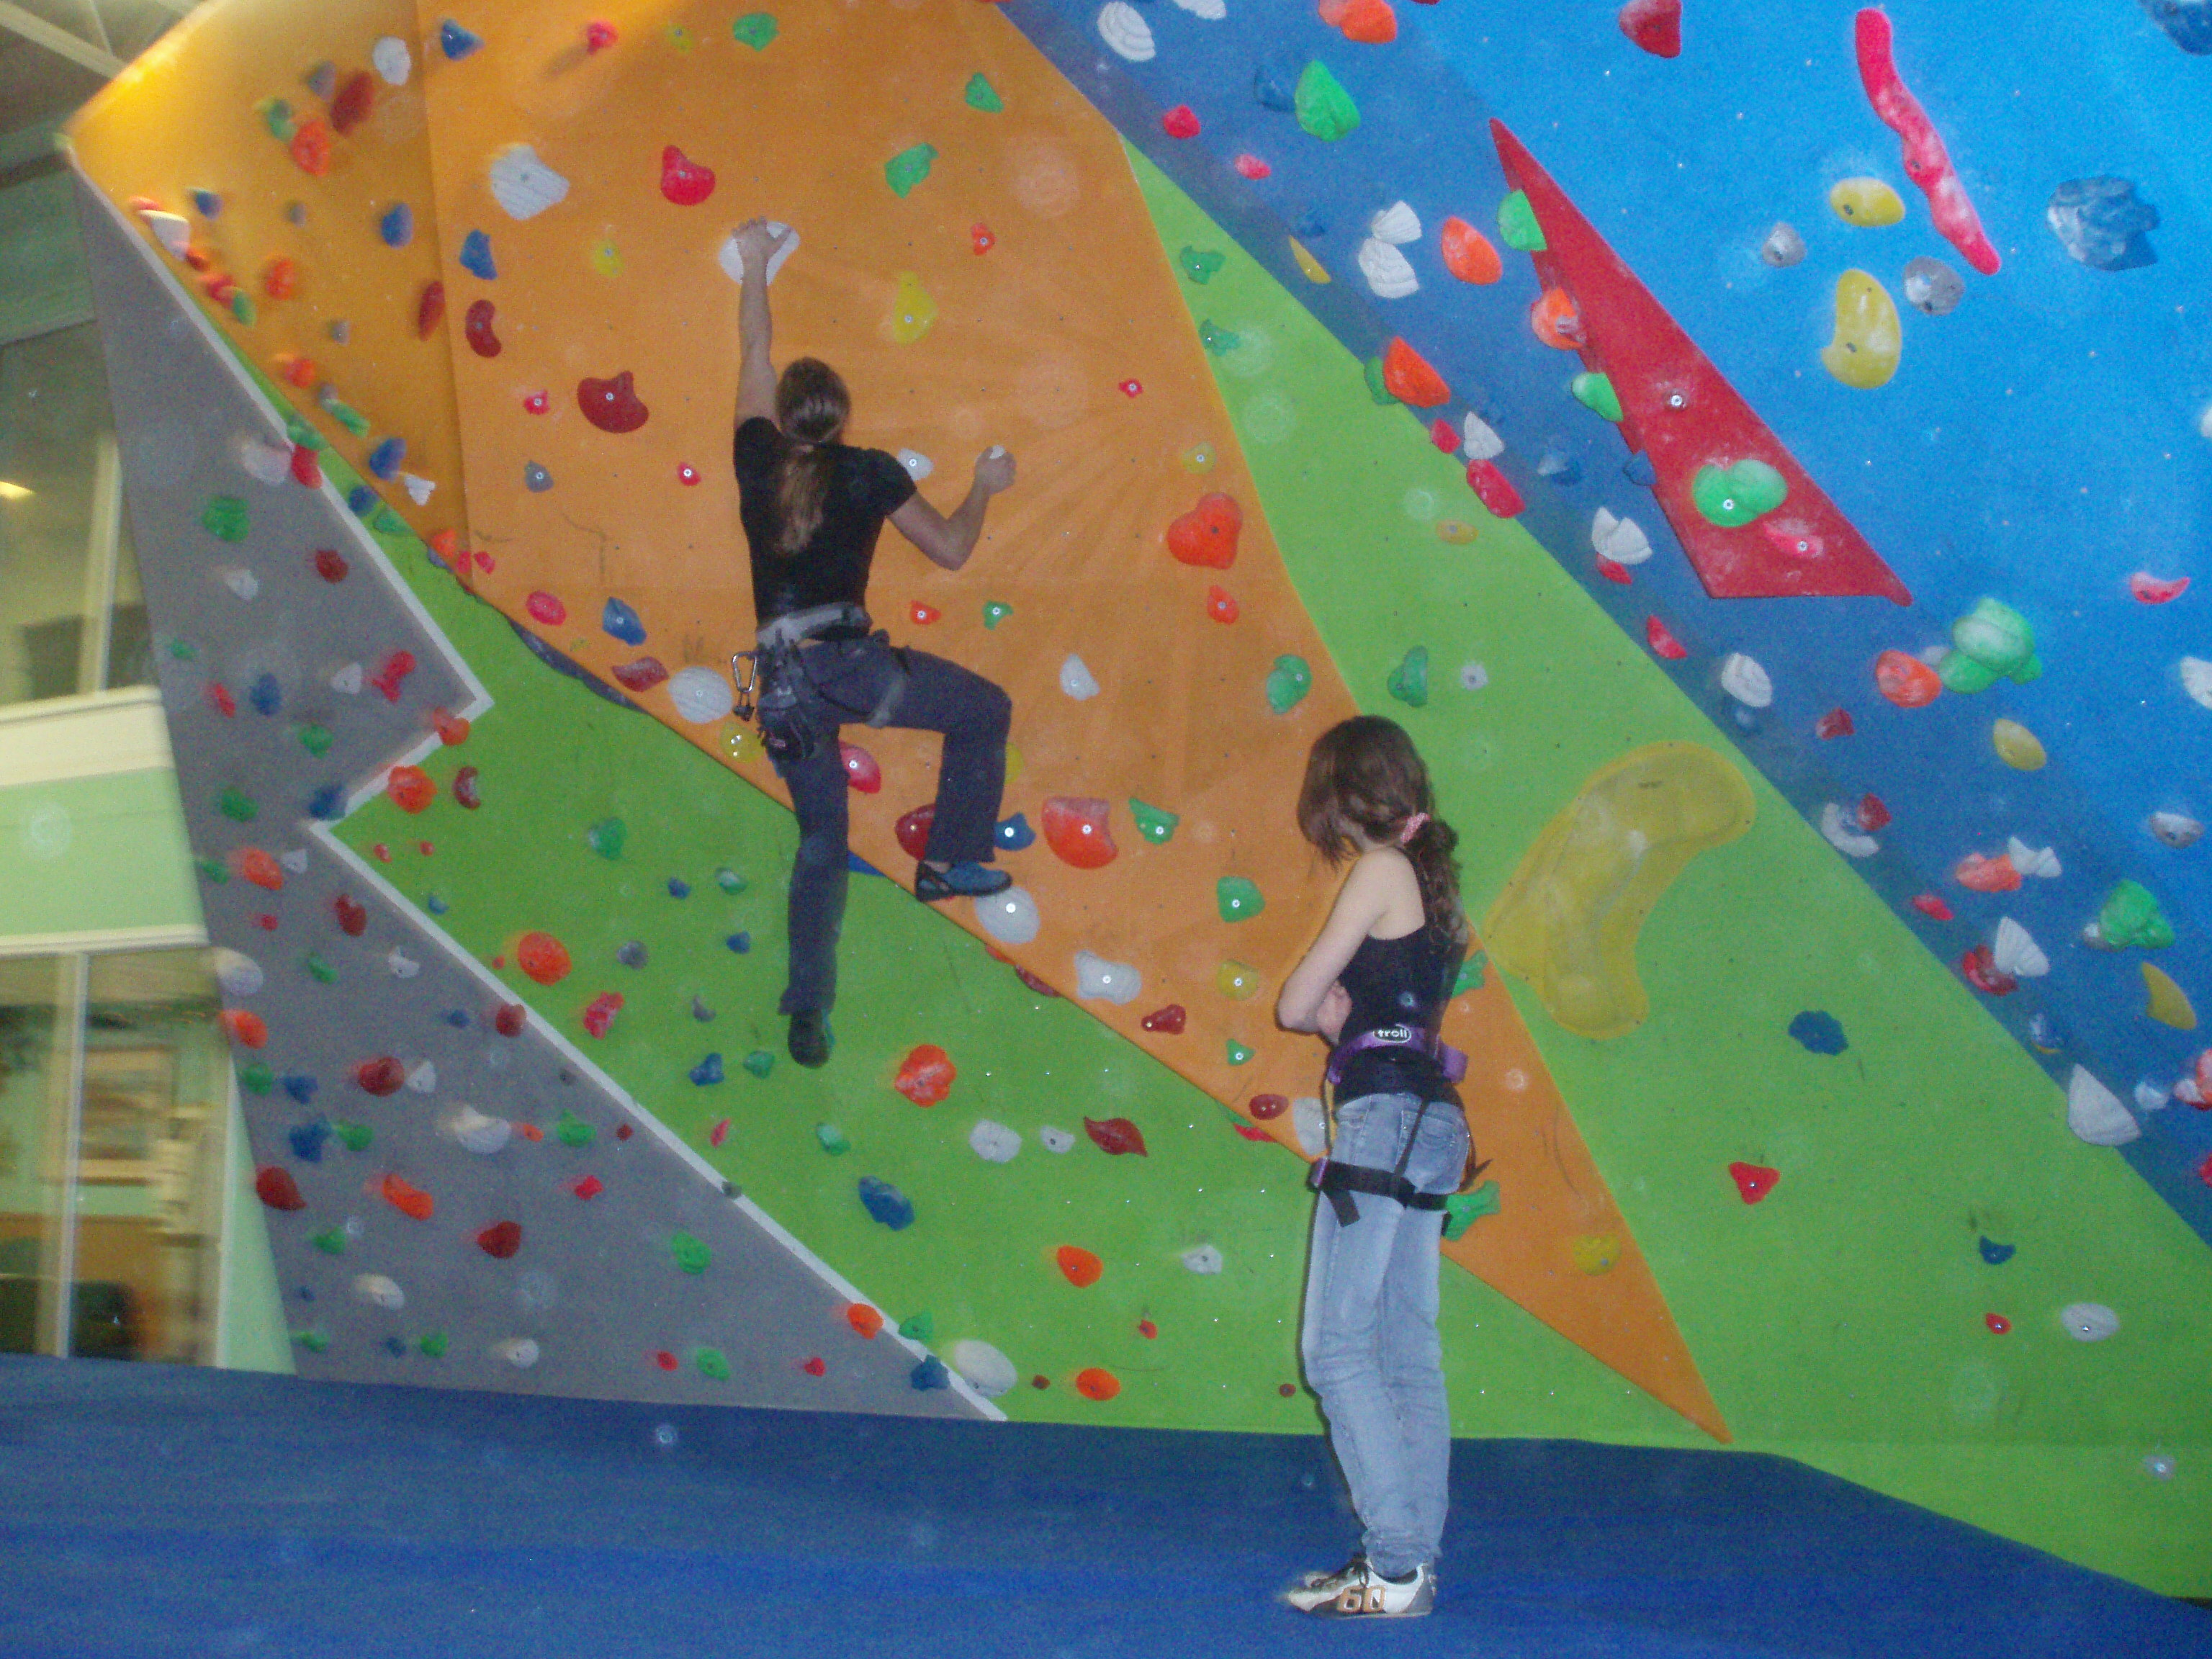 Indoor climbing wall, childrens holiday activities, birthday parties